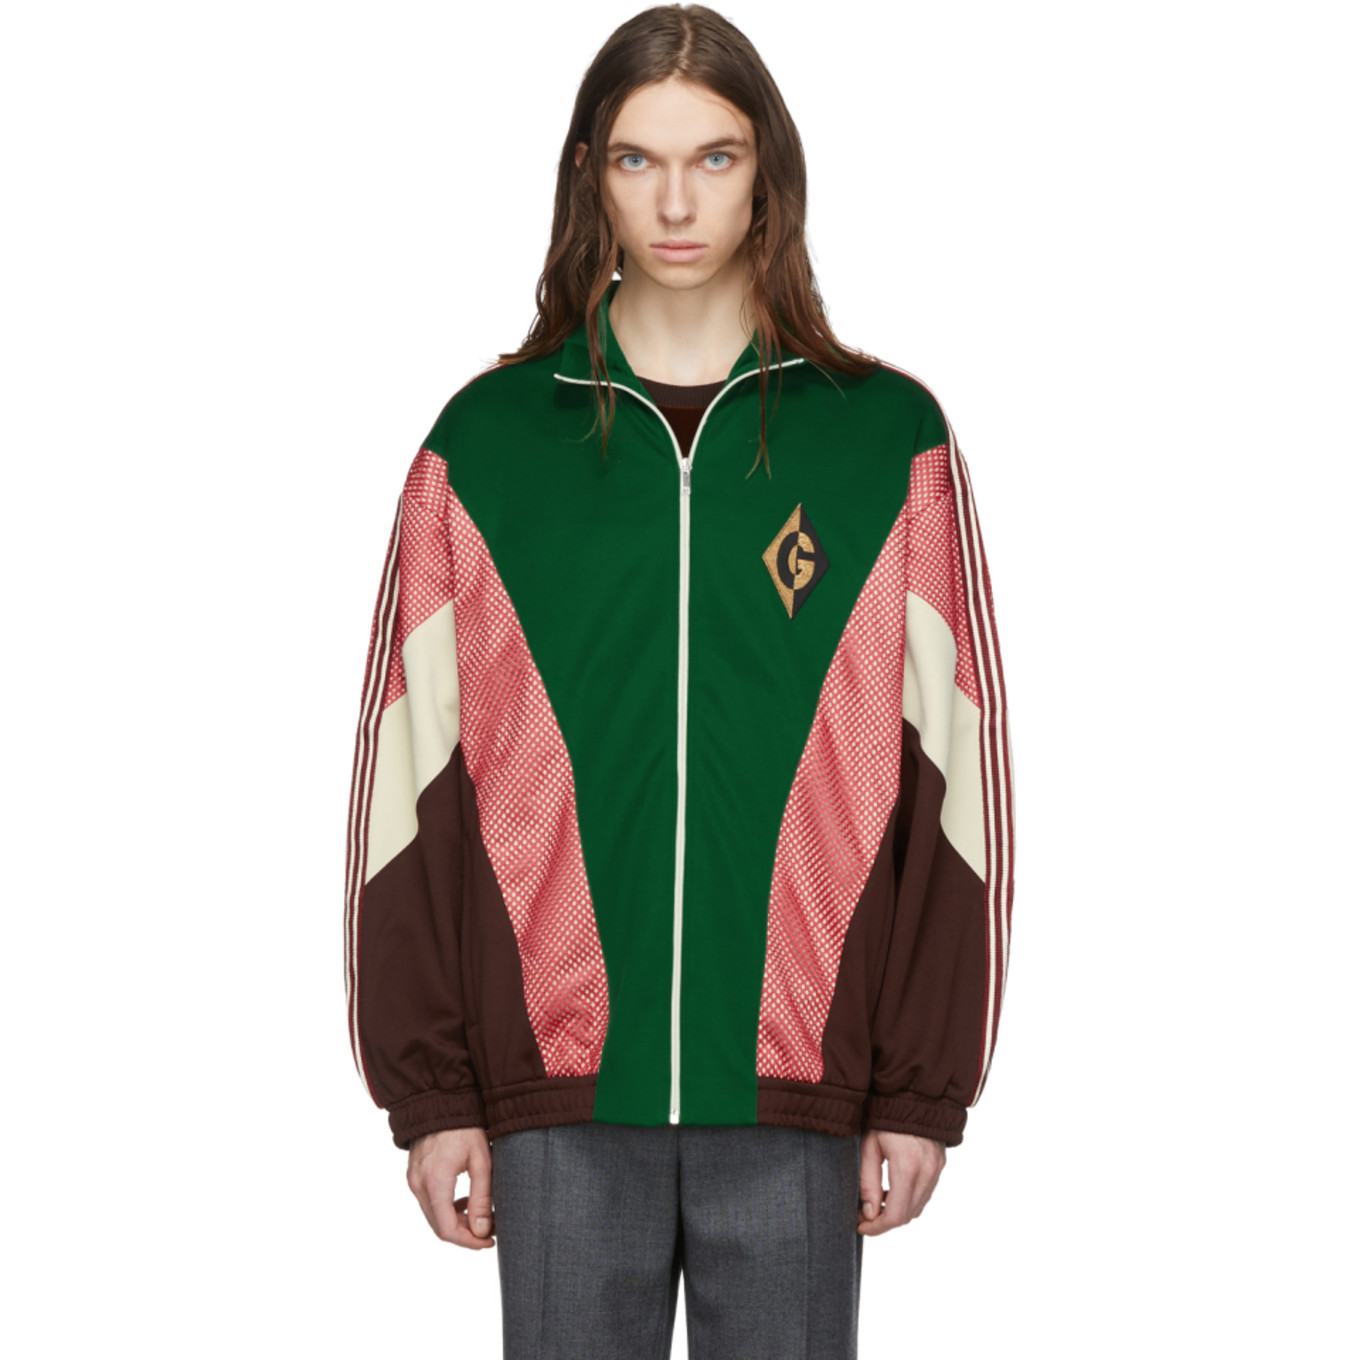 Green G Rhombus Patch Zip Jacket by Gucci